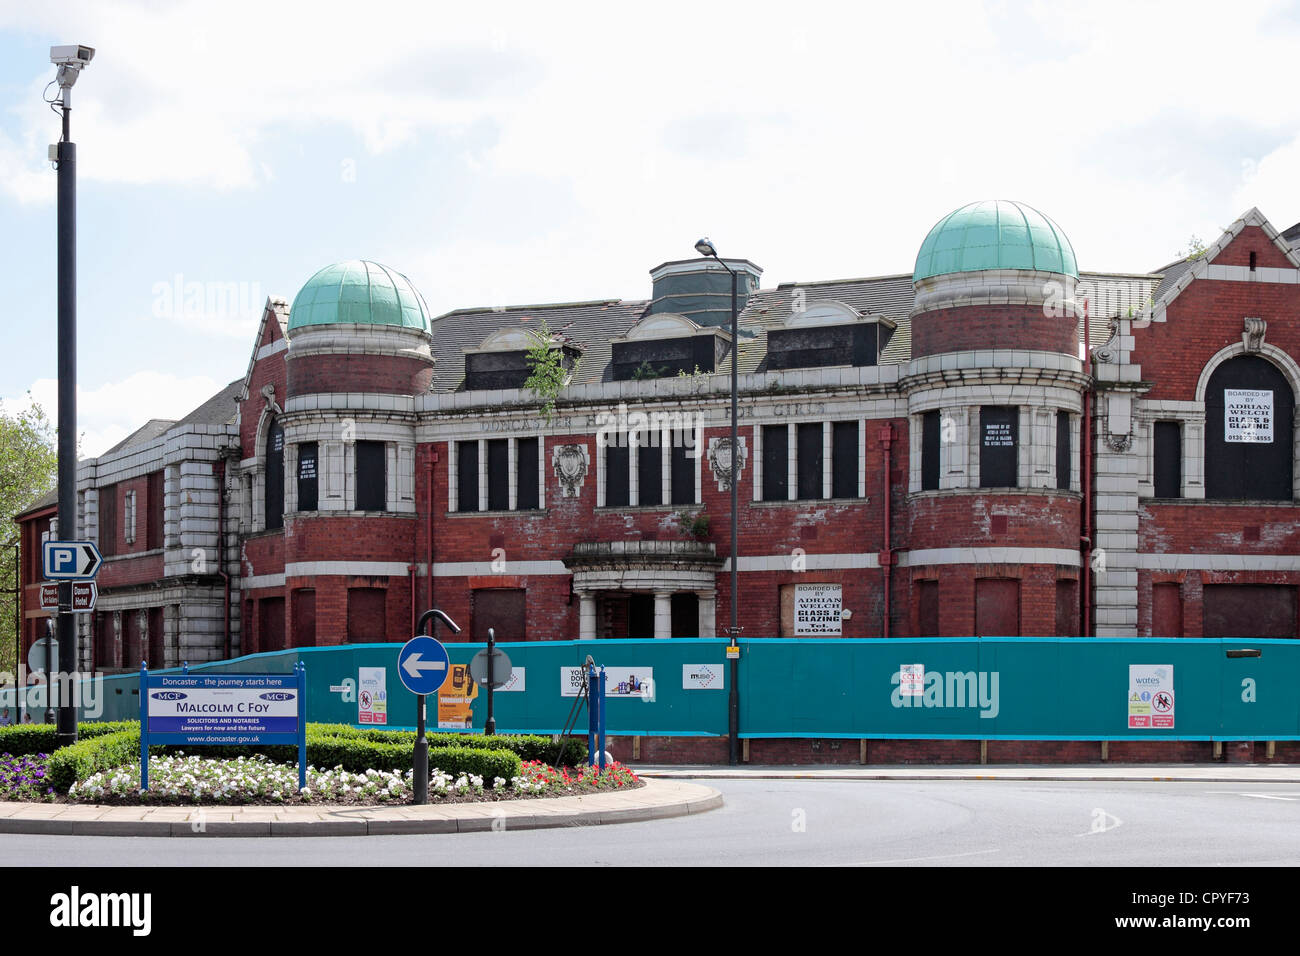 The old Doncaster High School for Girls or Girls Grammar School, Doncaster - Stock Image